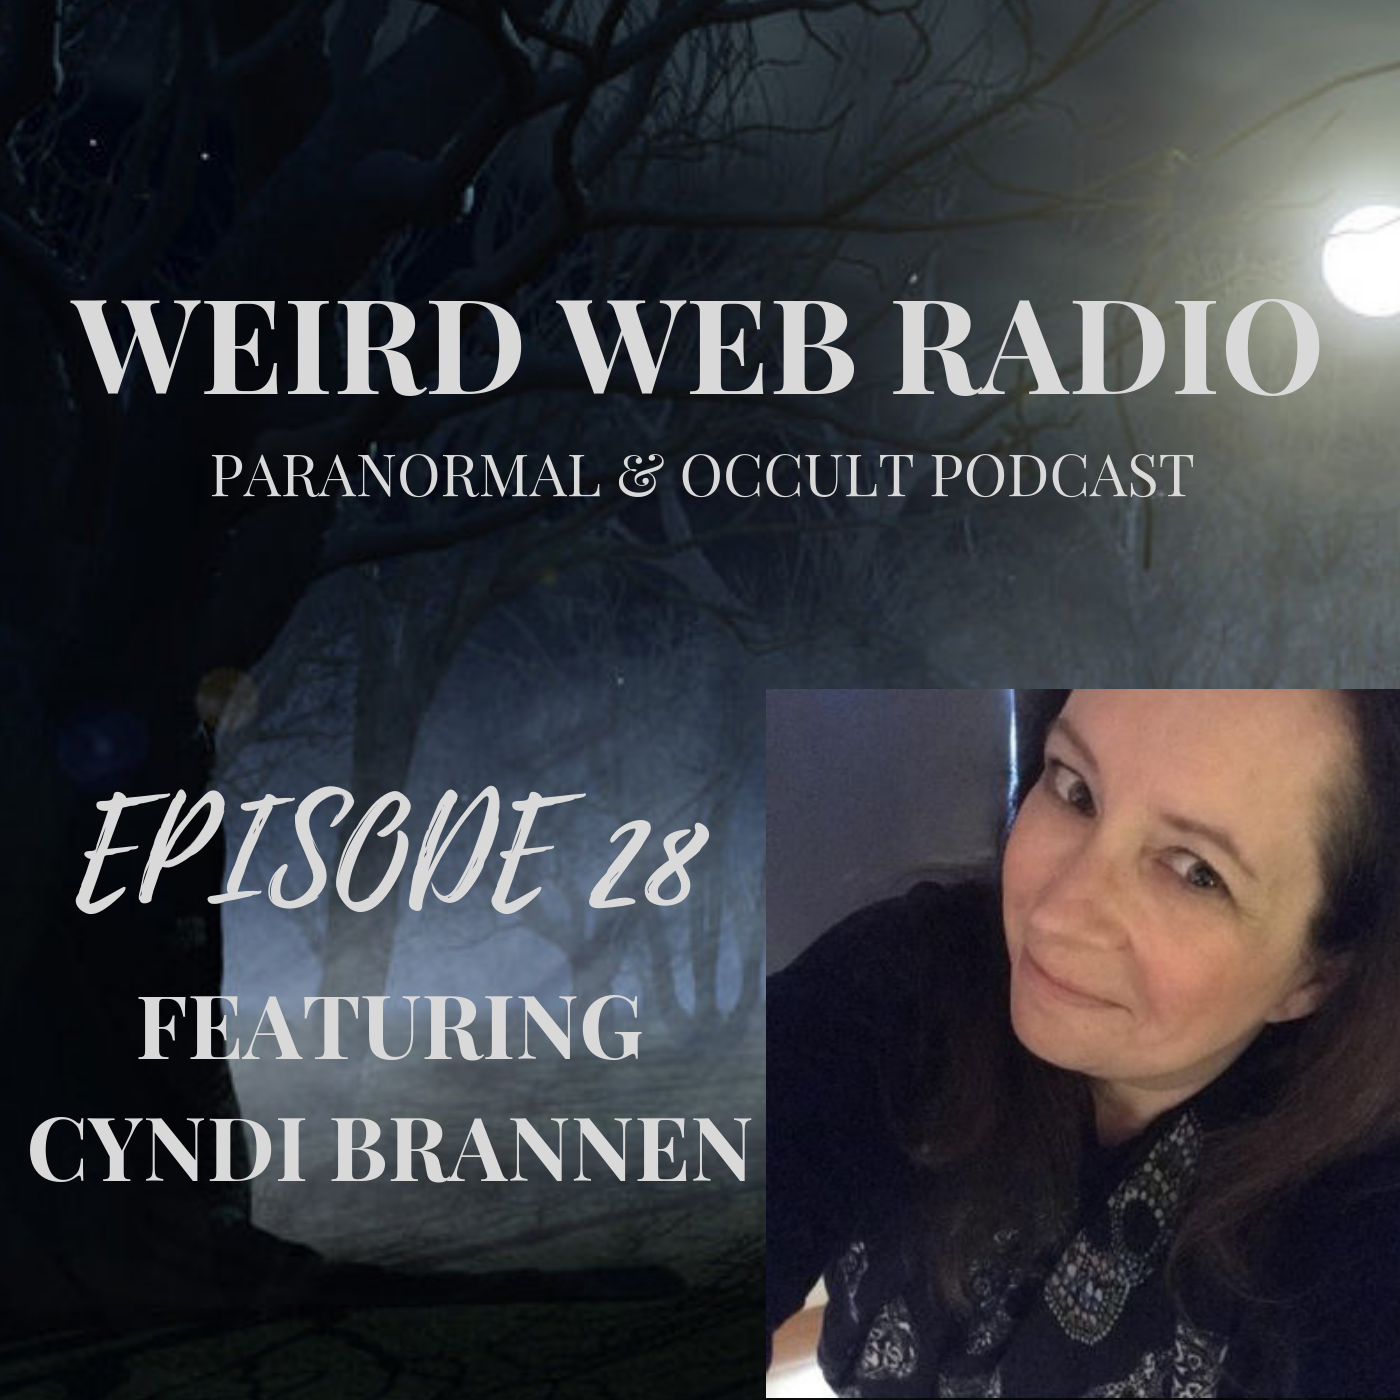 Occult Paranormal: Weird Web Radio